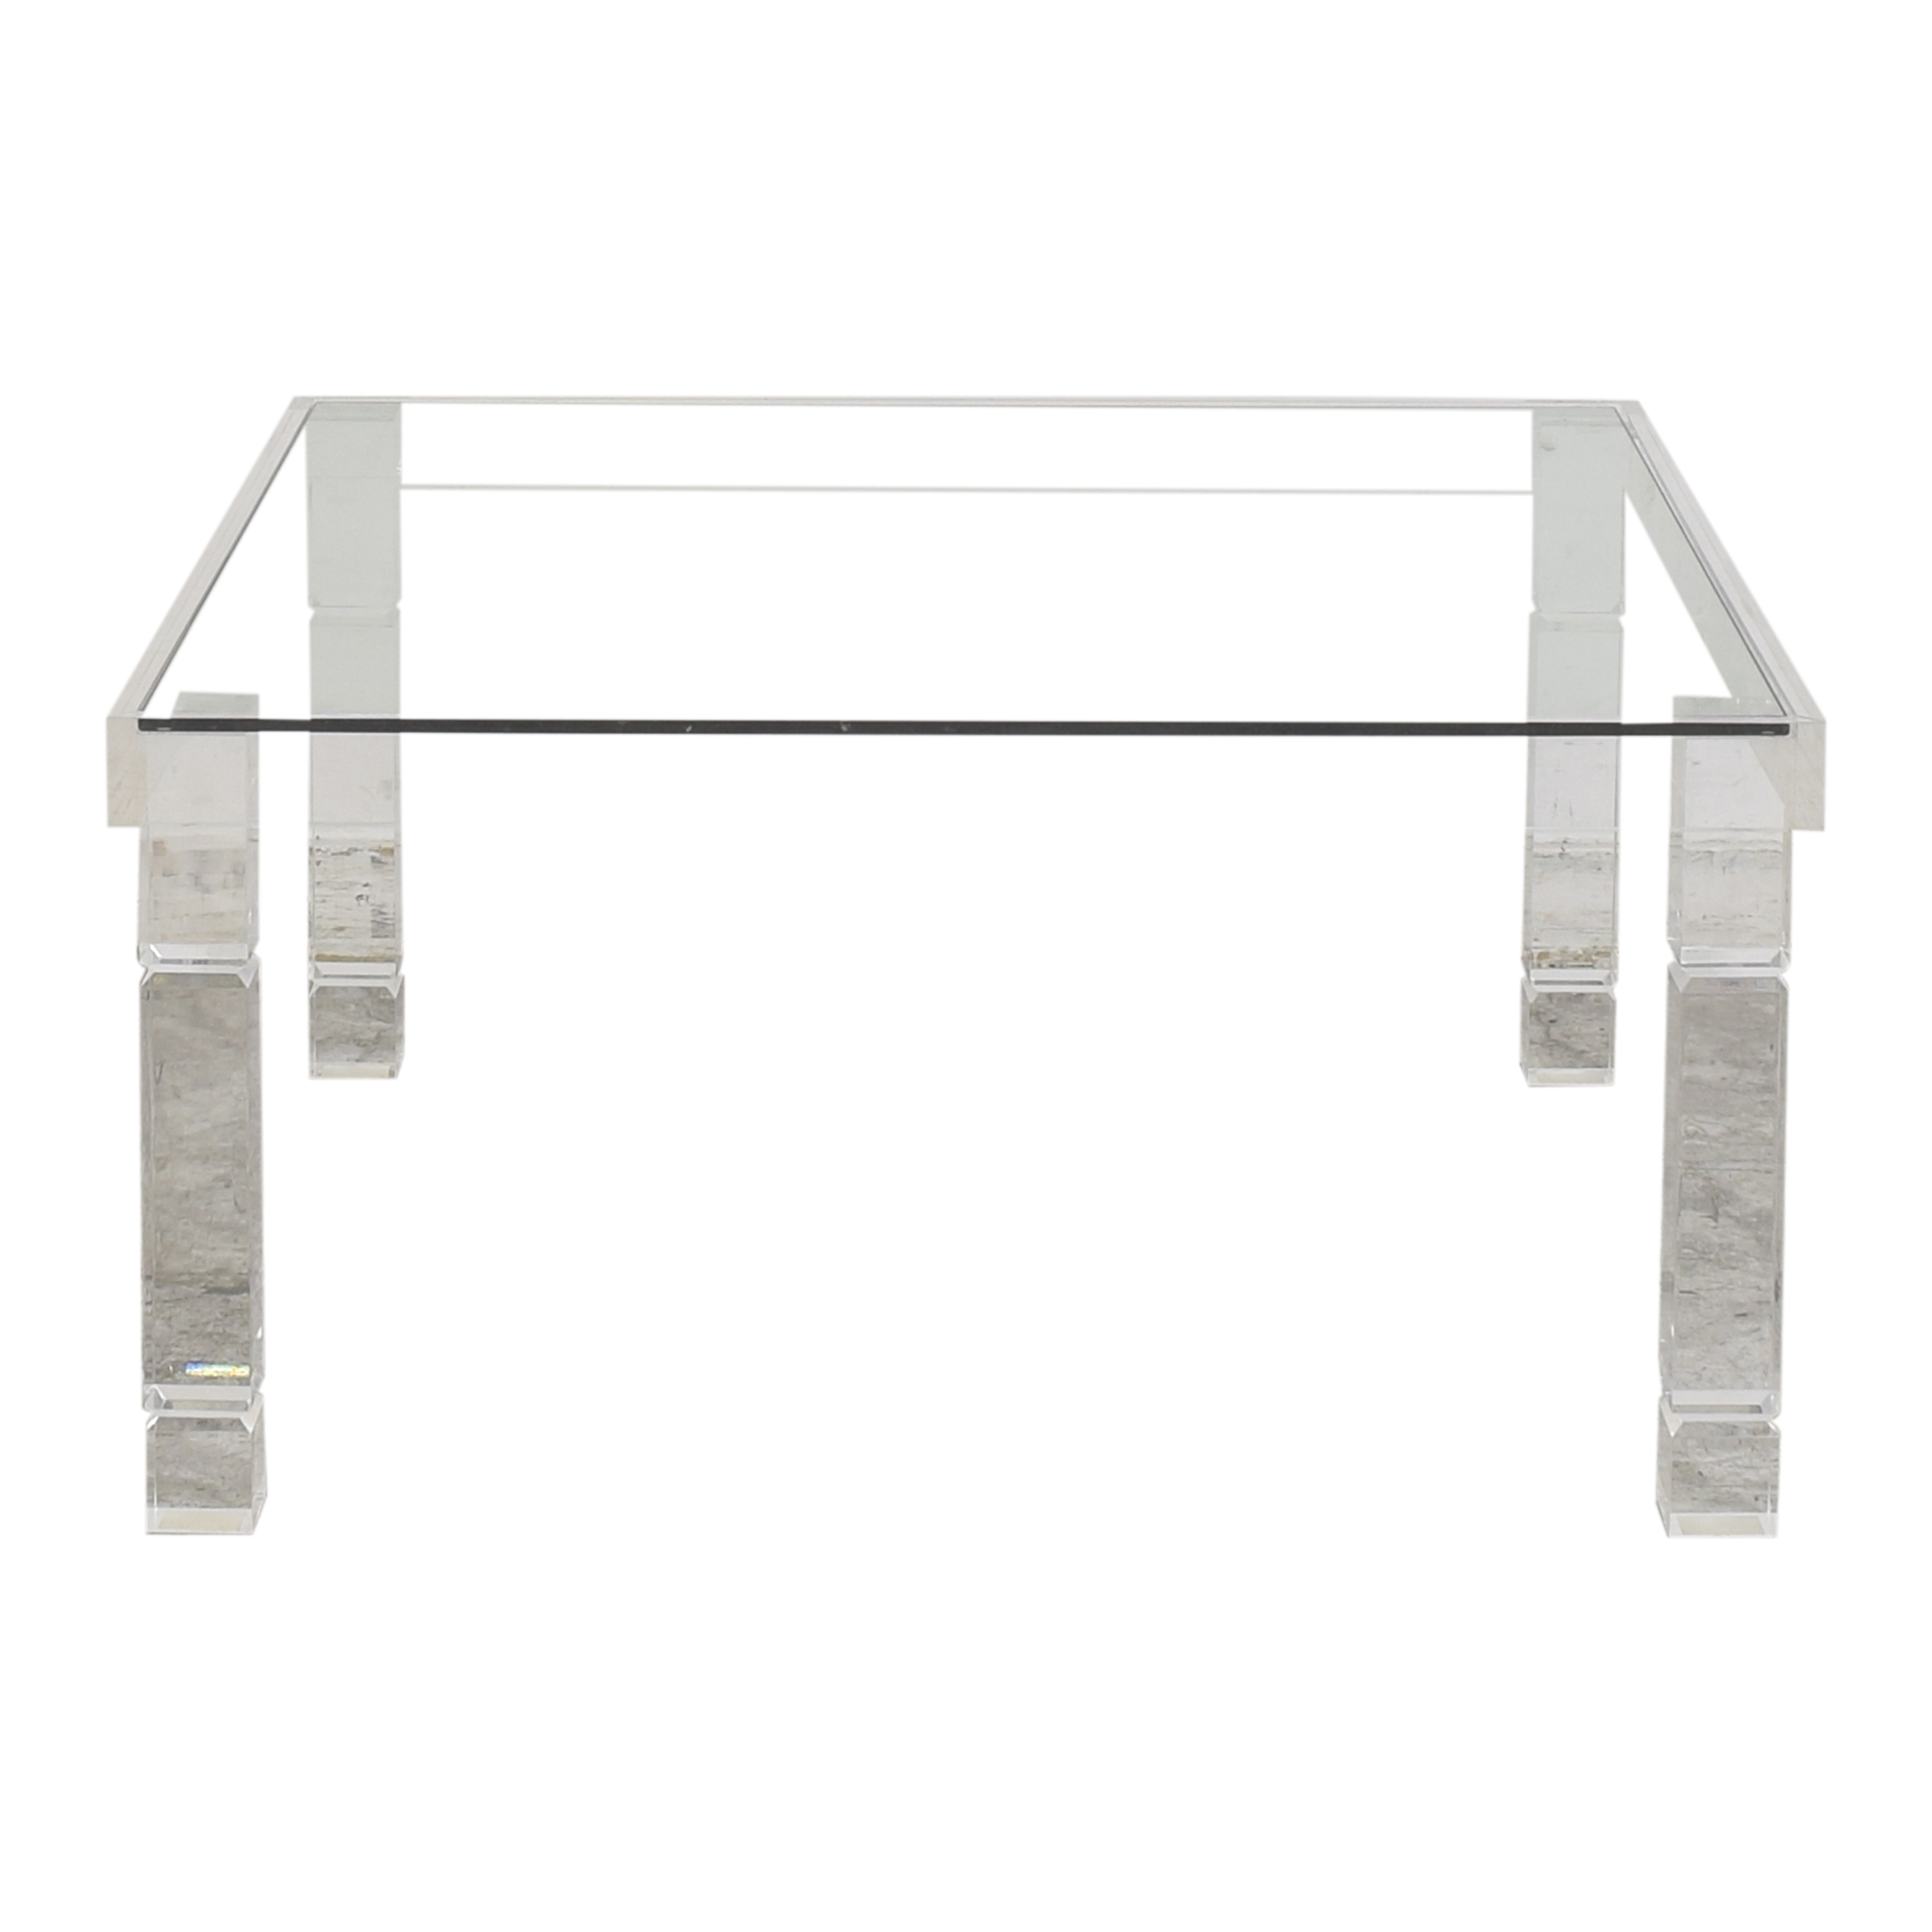 39 off lamps plus lamps plus bristol coffee table tables